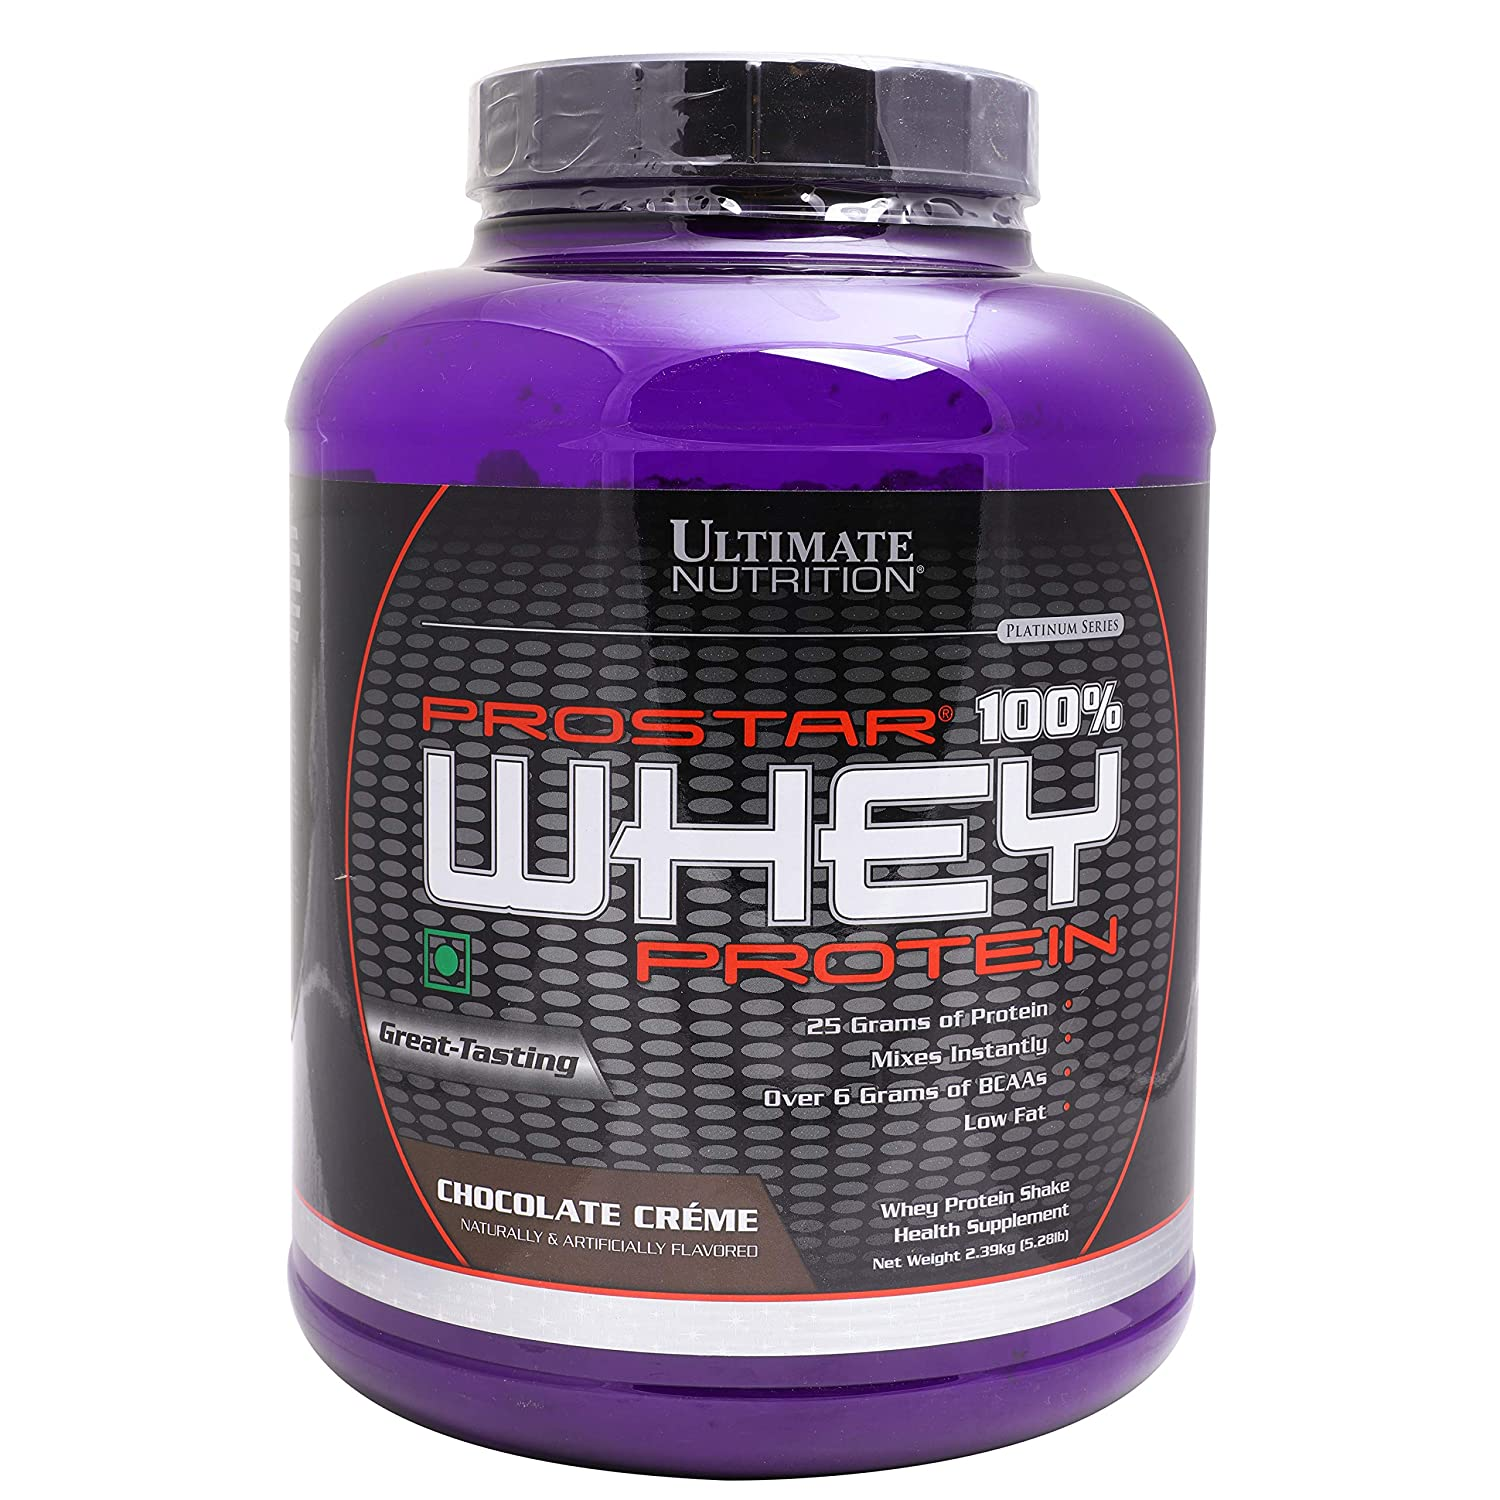 Ultimate Nutrition Prostar 100% Whey Protein - 5.28 lbs (Chocolate Creme): Amazon.in: Health & Personal Care